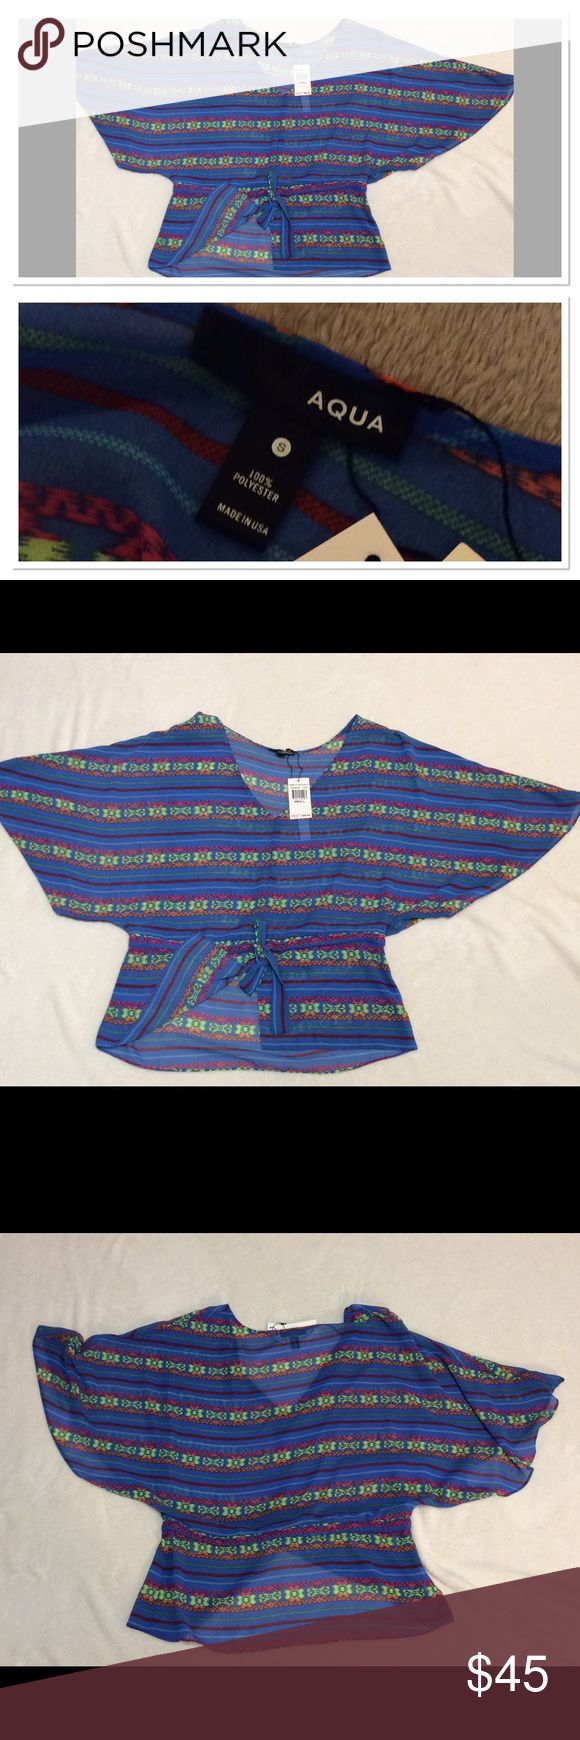 "S AQUA neon printed batwing top Brand: Aqua Style: batwing top Size: S Measurements: pit to pit 17.5""  shoulder to hem 25.5"" Material: 100% Polyester  Features: neon Aztec print, made in USA, tie waist Condition: NWT  New with tags Aqua Tops"